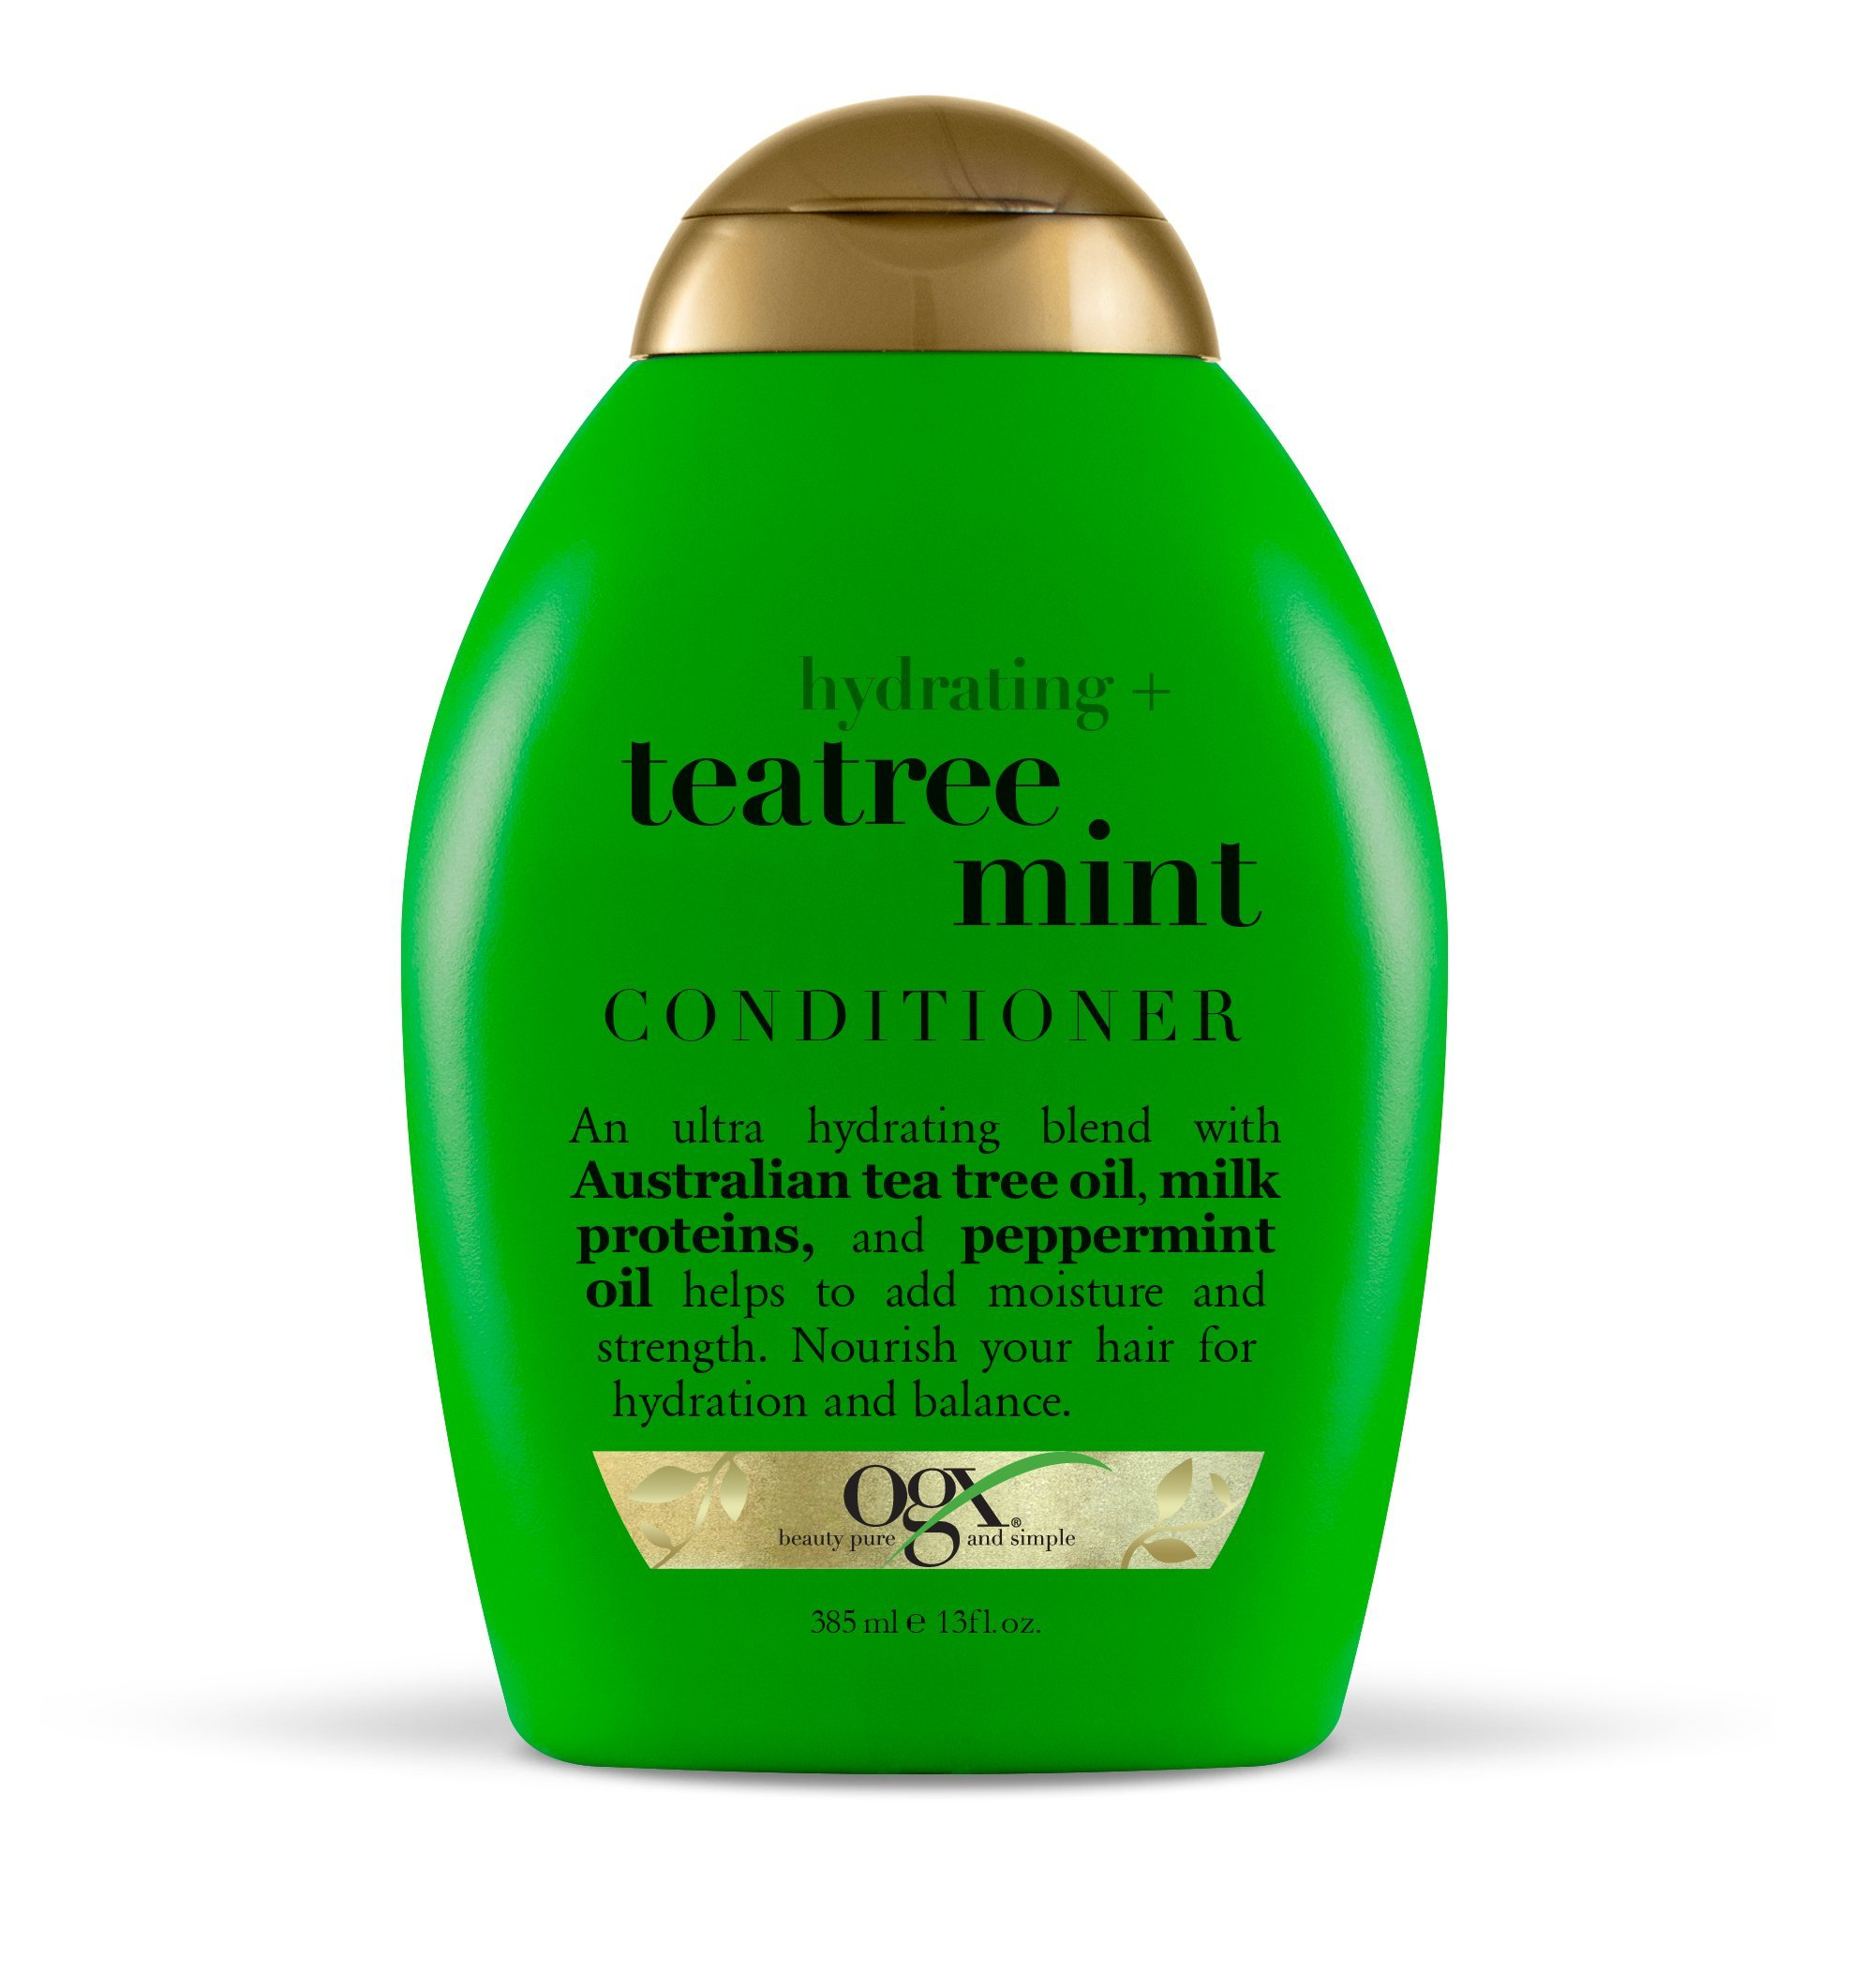 OGX Conditioner Hydrating TeaTree Mint (1) 13 Ounce Bottle Hydrating and Nourishing Conditioner with Australian Tea Tree Oils Paraben Free Sustainable Ingredients